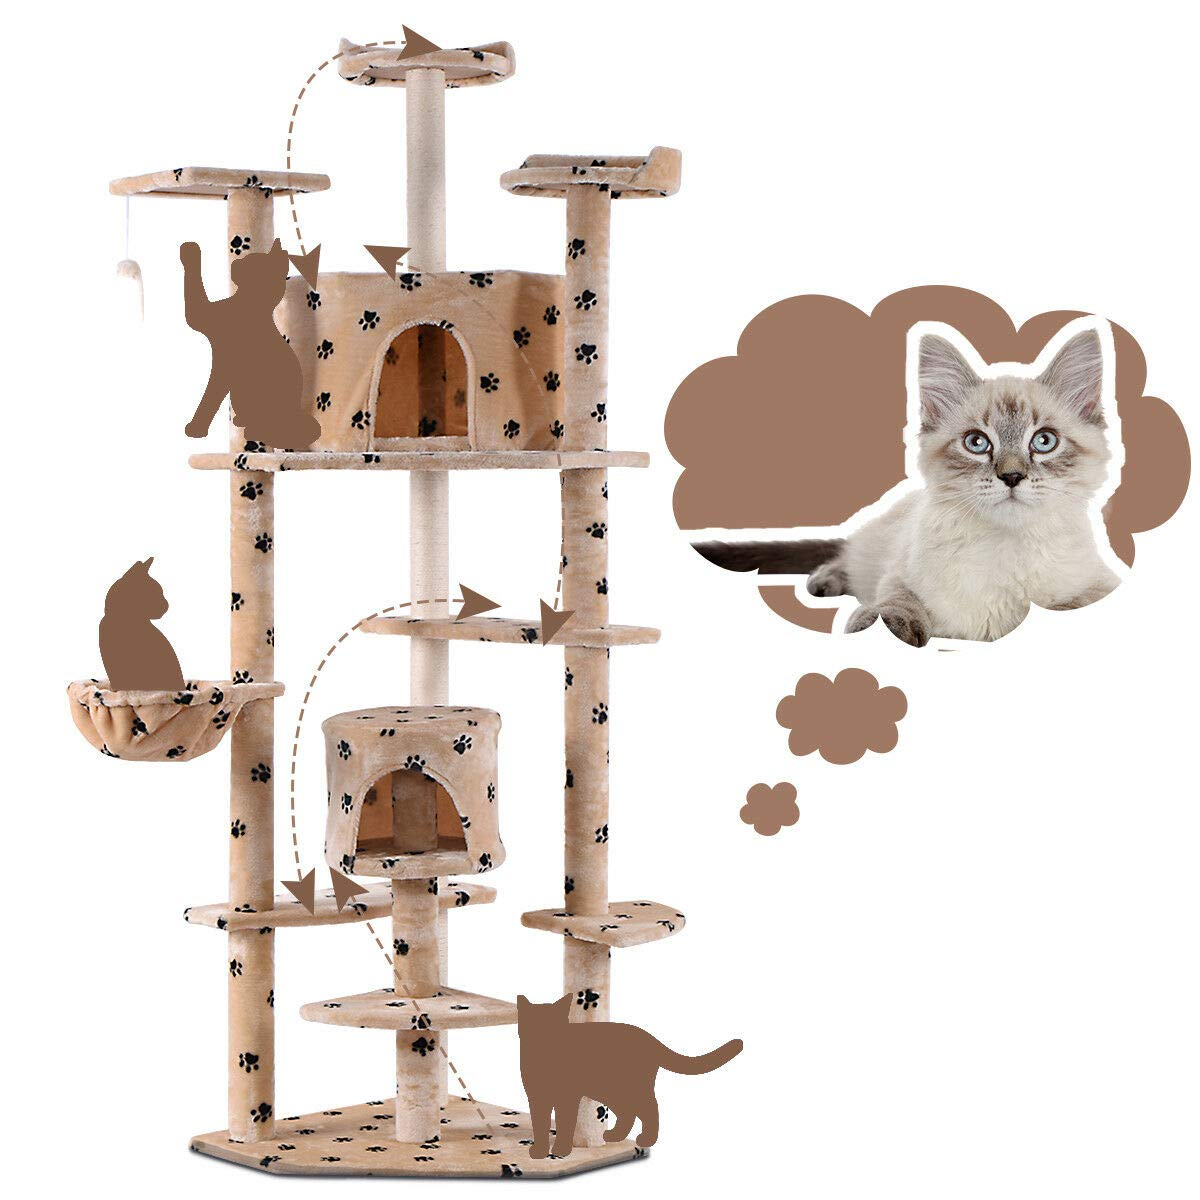 HTH_ONLINE_STORE Cat Tree Condo Furniture Scratch Post Pet House Large Activity Tower